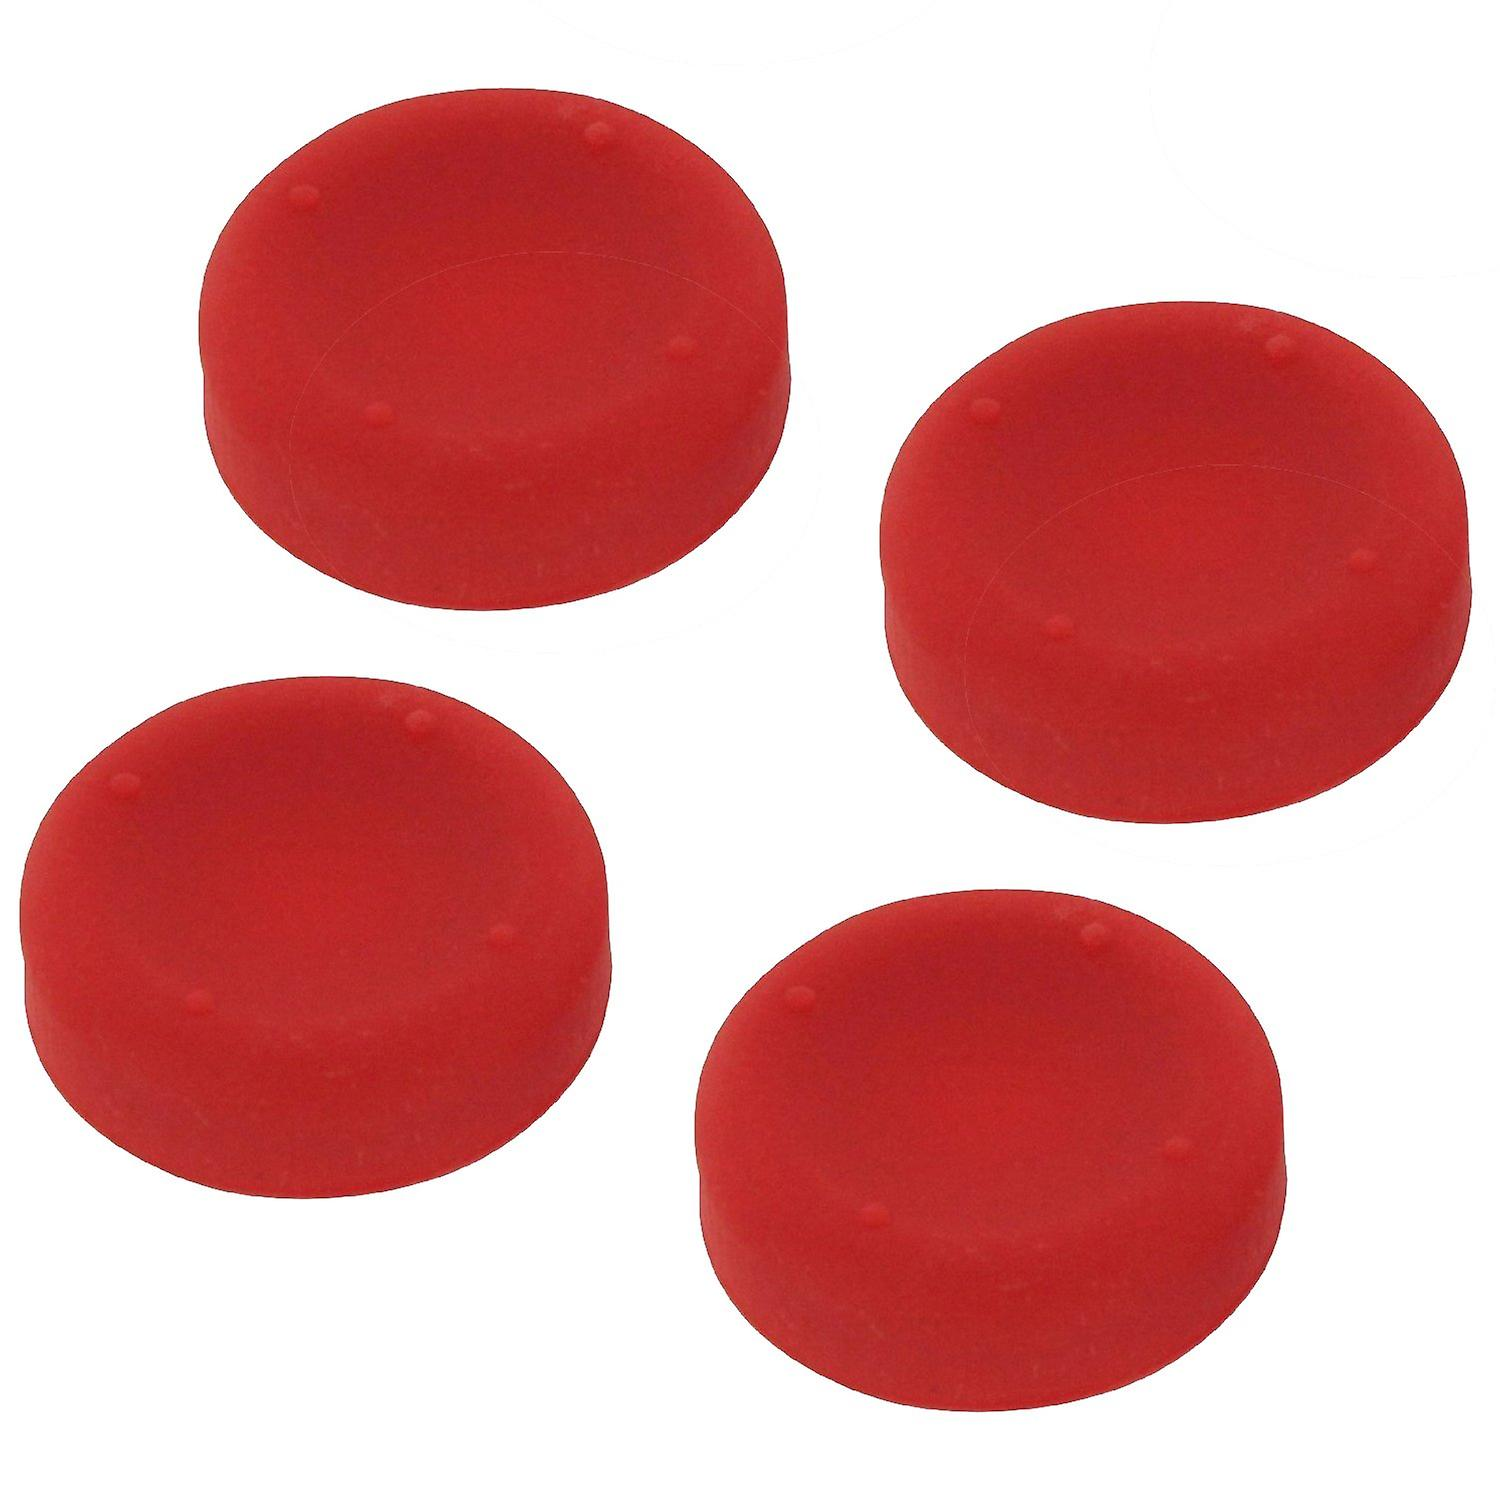 Concave soft silicone thumb grips for sony ps4 controller analog sticks - 4 pack red